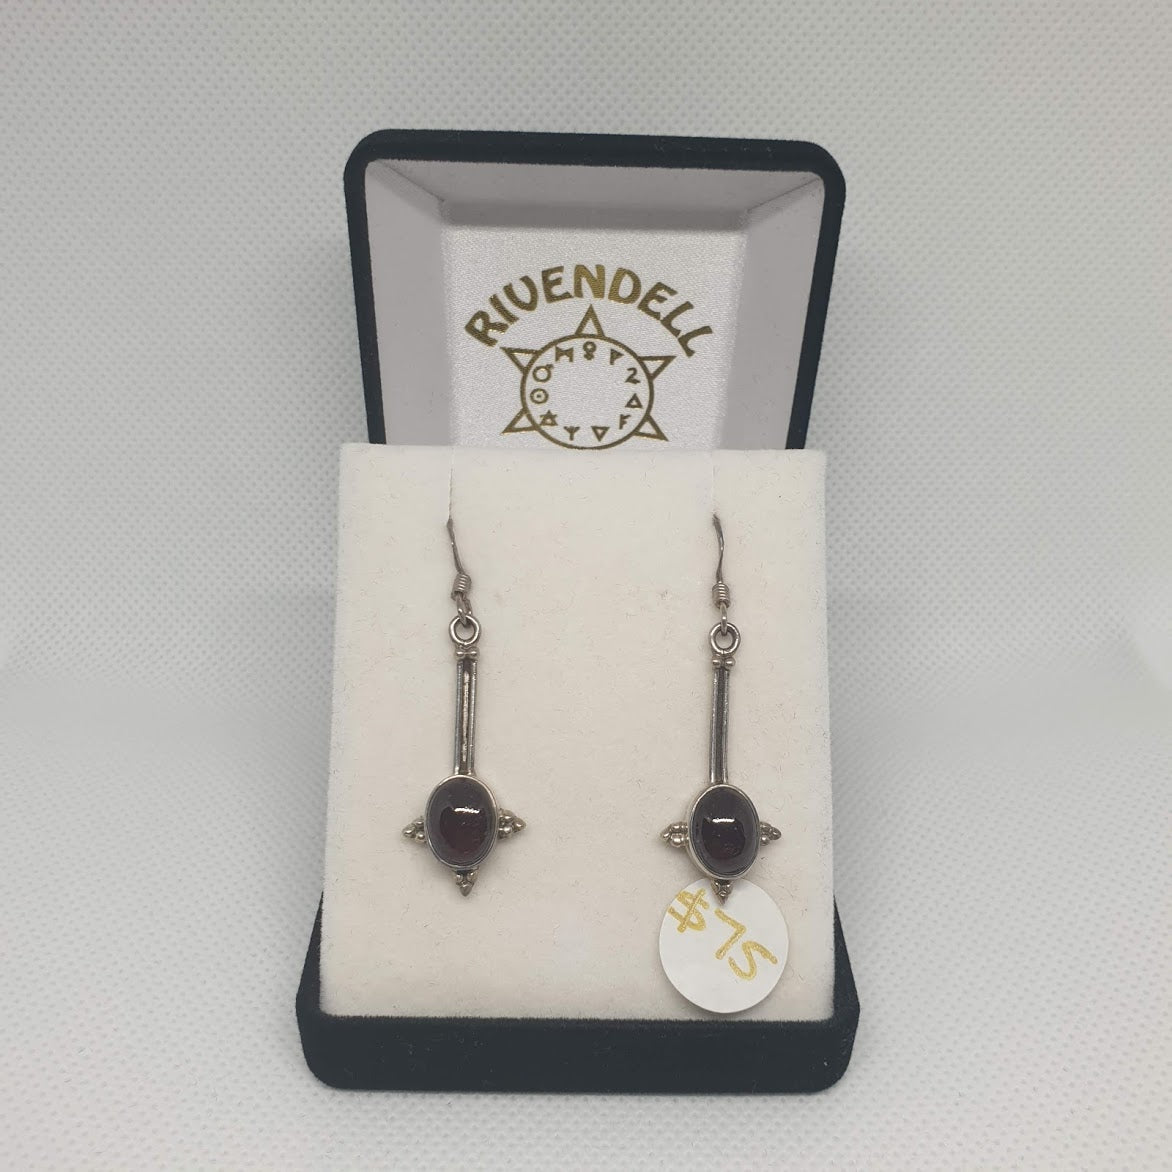 Garnet 925 Sterling Silver Drop Earrings 1 - Rivendell Shop